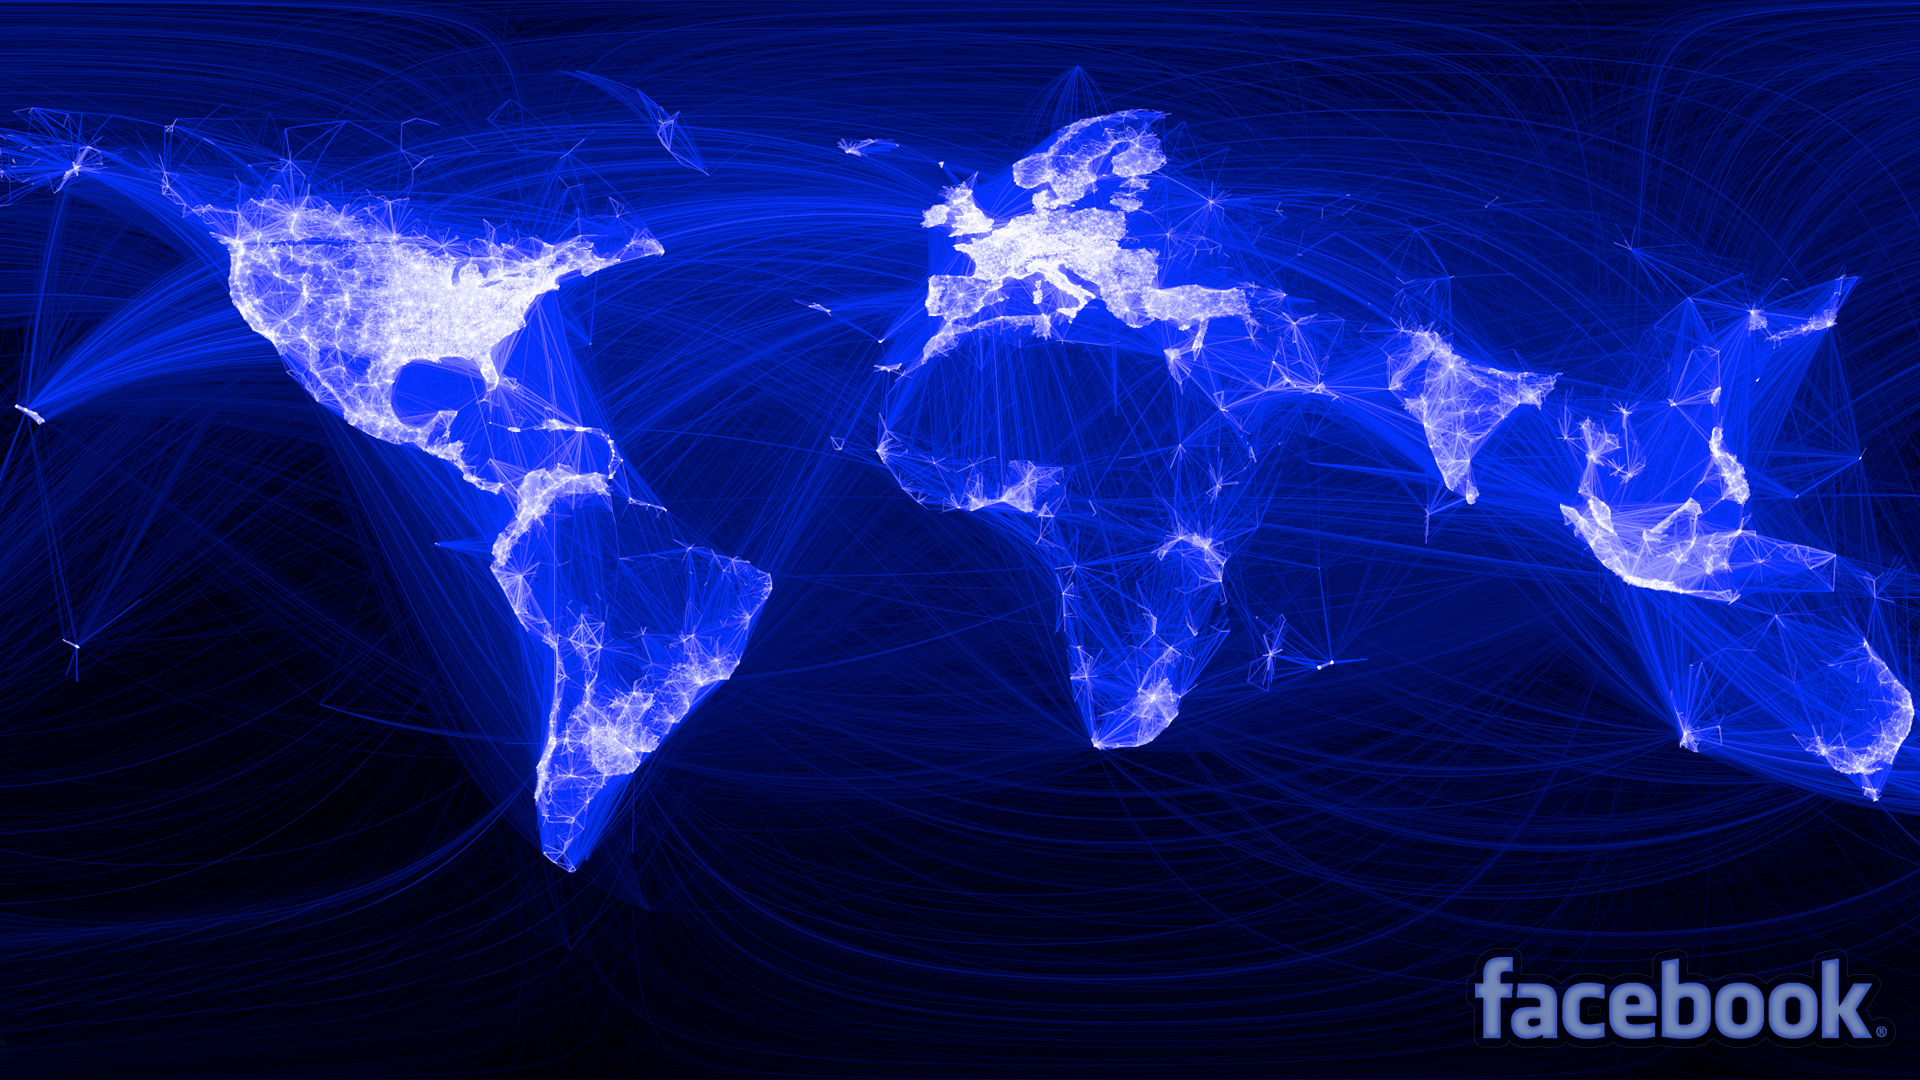 Facebook World Network Wallpapers HD Wallpapers 1920x1080